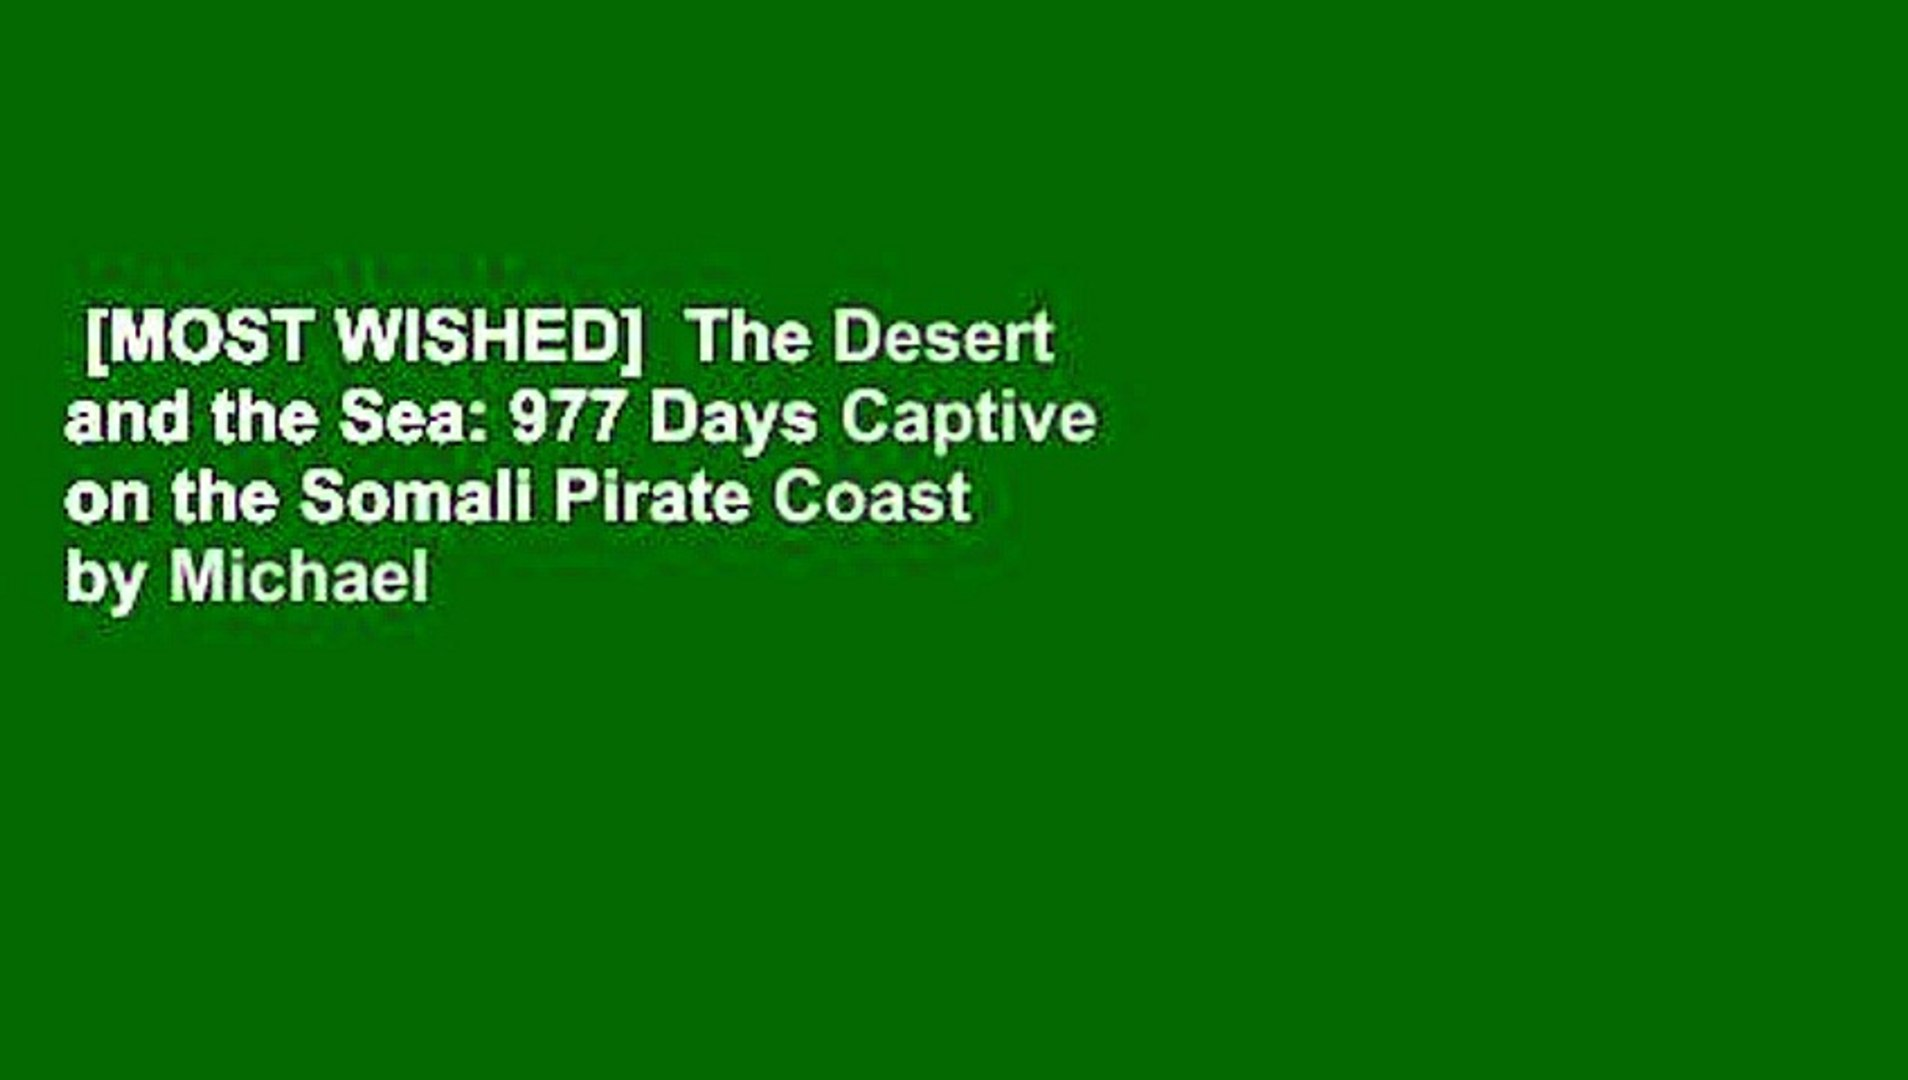 [MOST WISHED]  The Desert and the Sea: 977 Days Captive on the Somali Pirate Coast by Michael